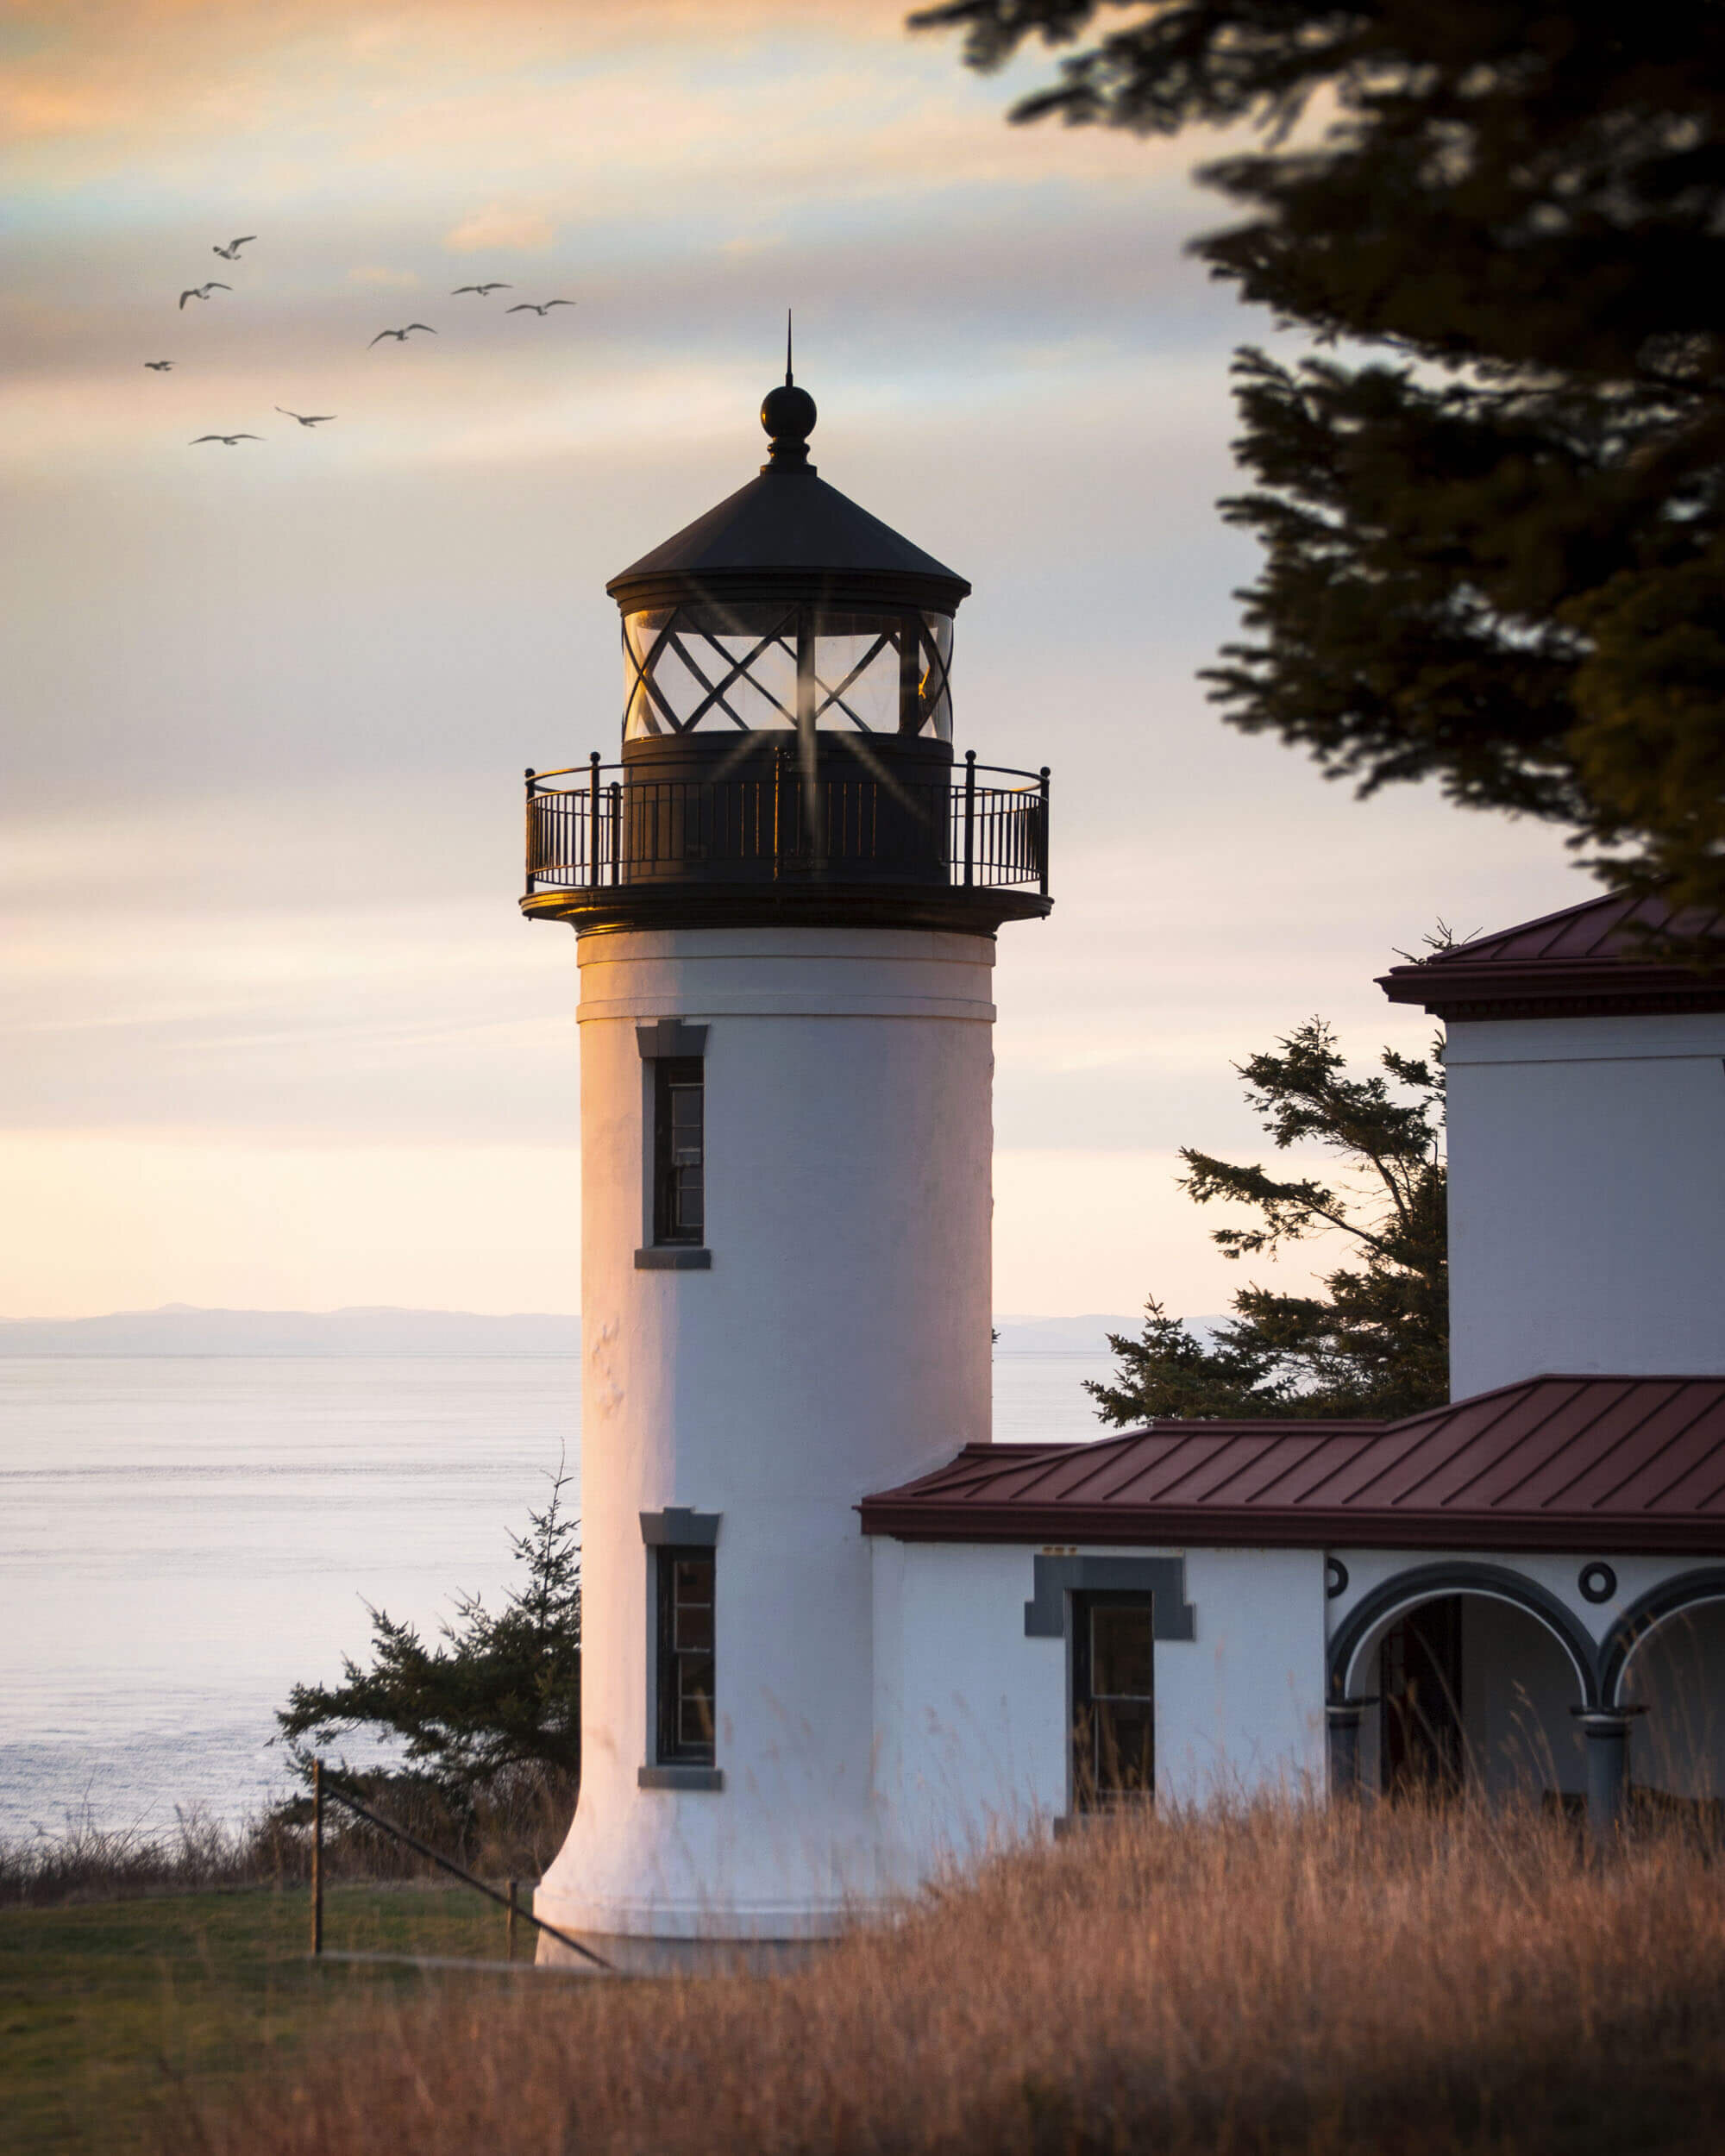 Admiralty Head Lighthouse is located in Fort Casey State Park and makes for a nice sunset subject.